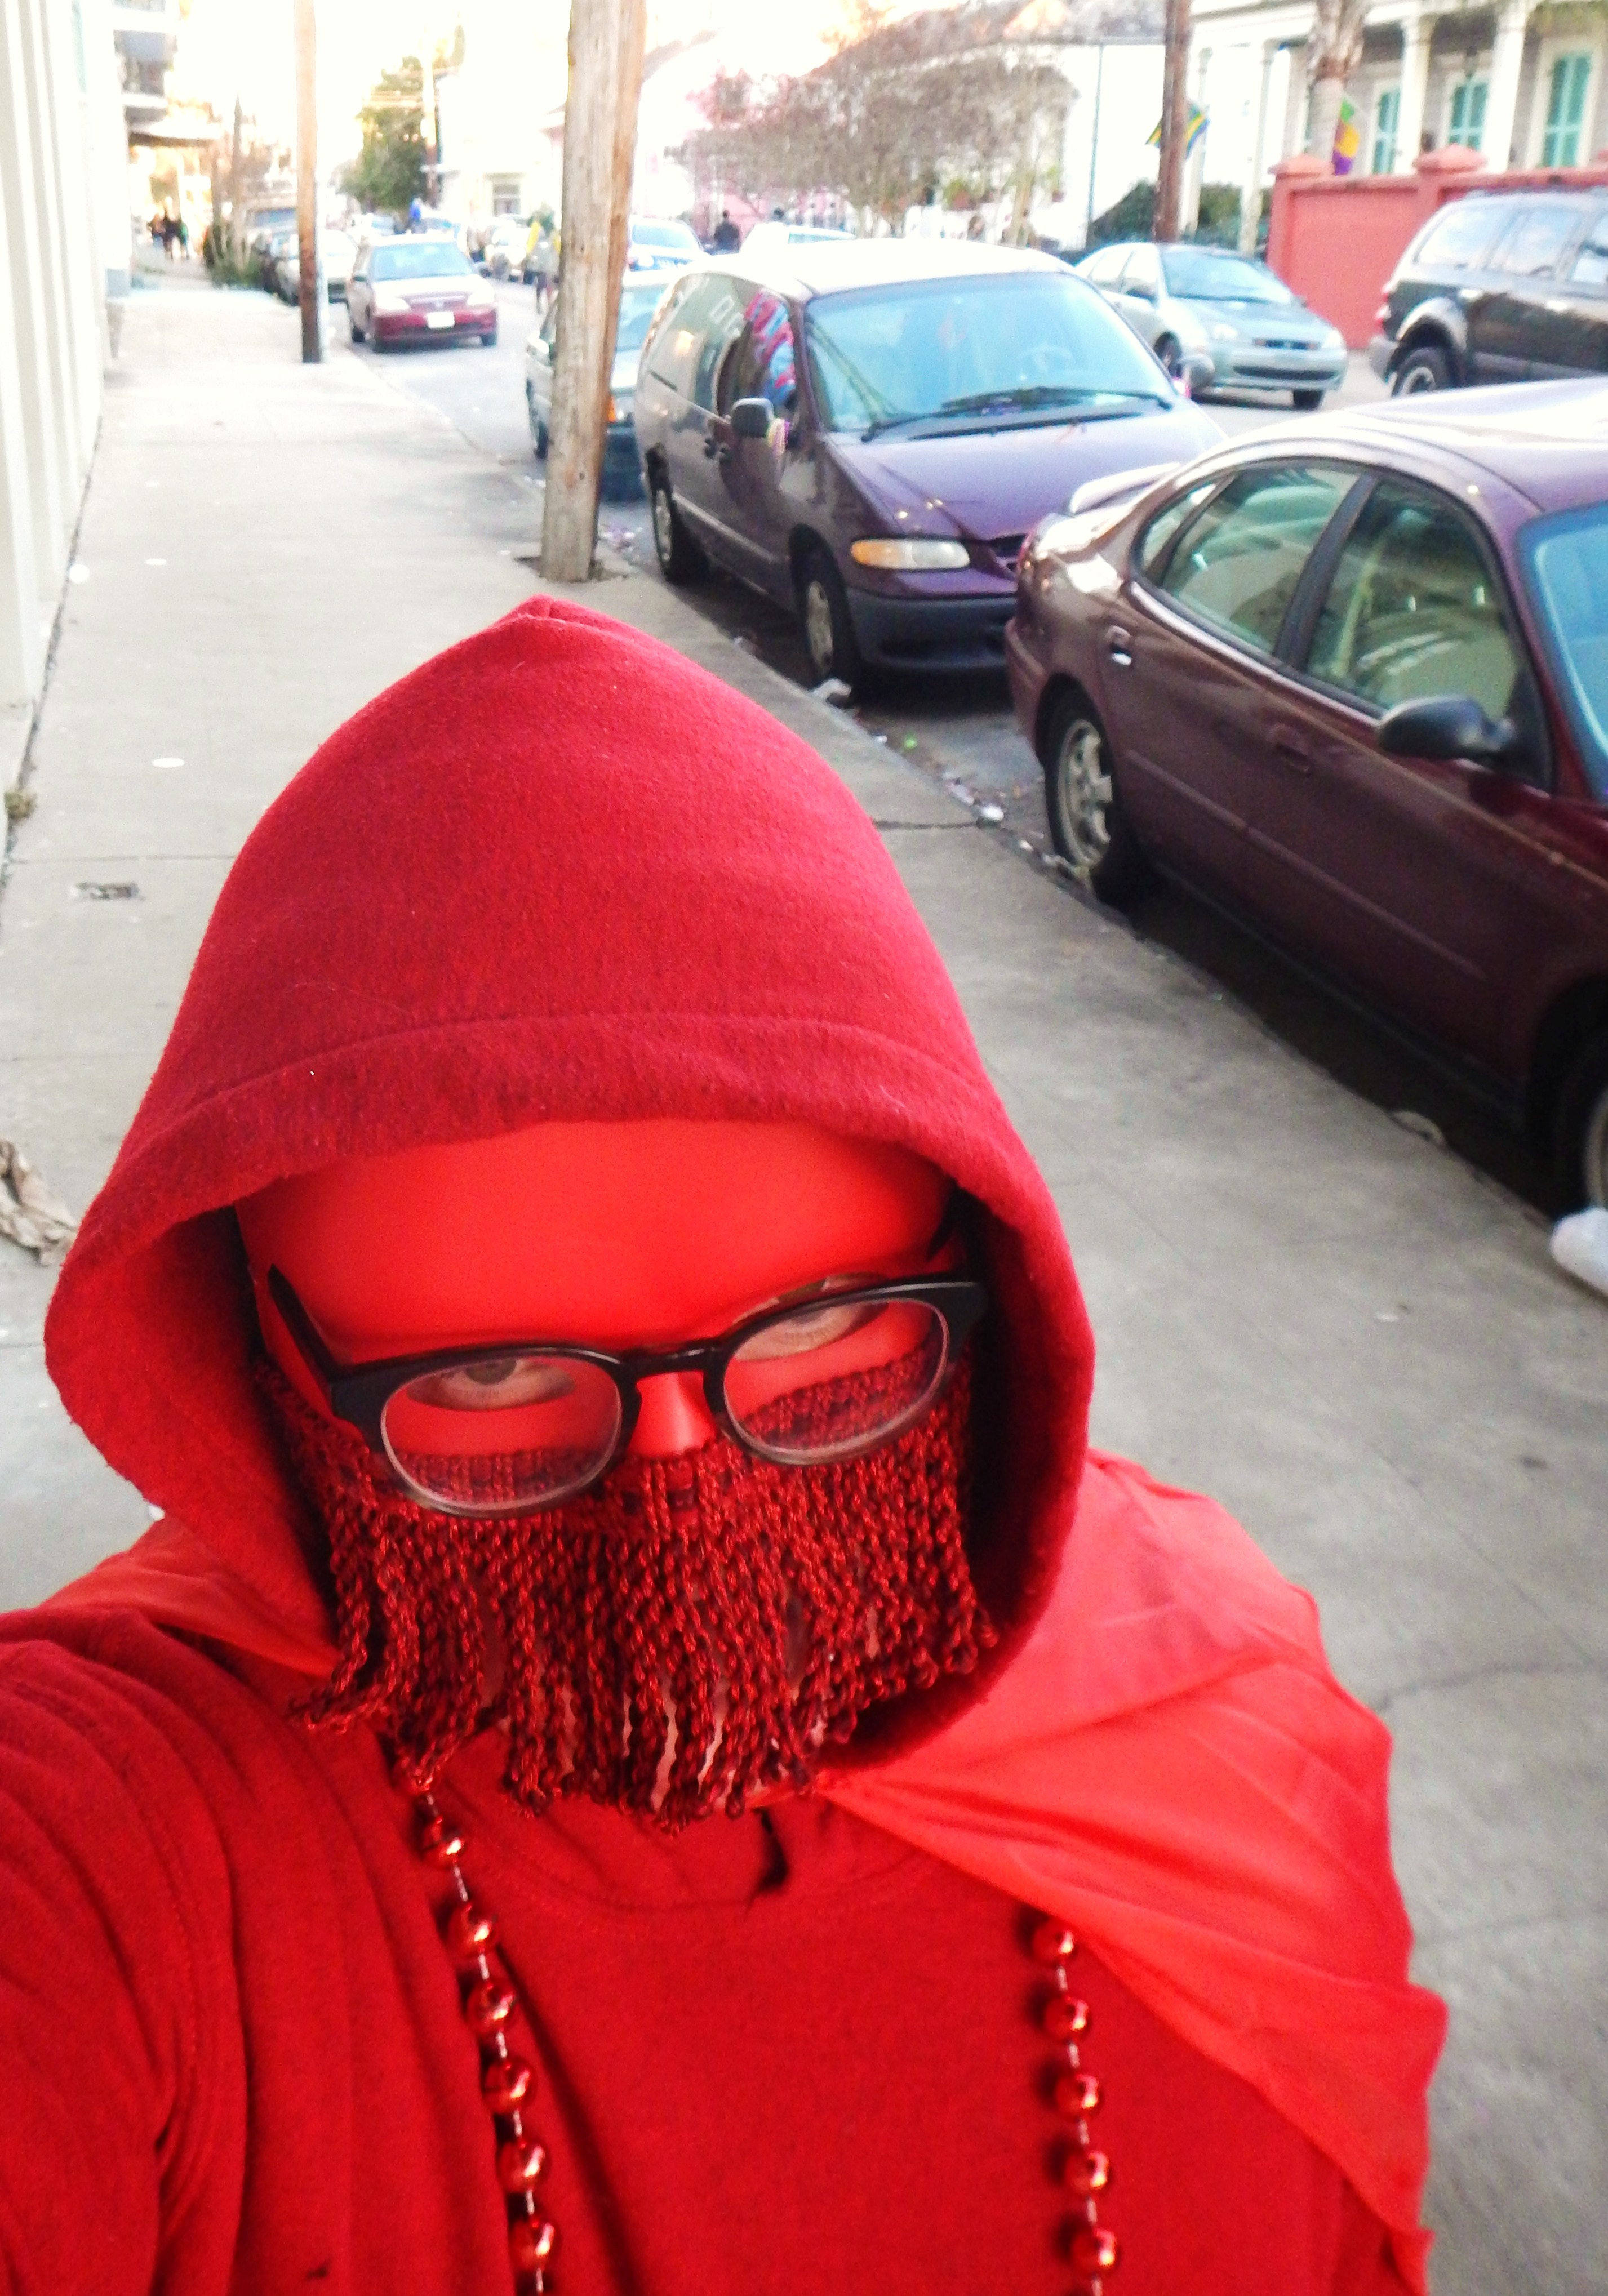 The Masque Of The Red On Mardi Gras Day